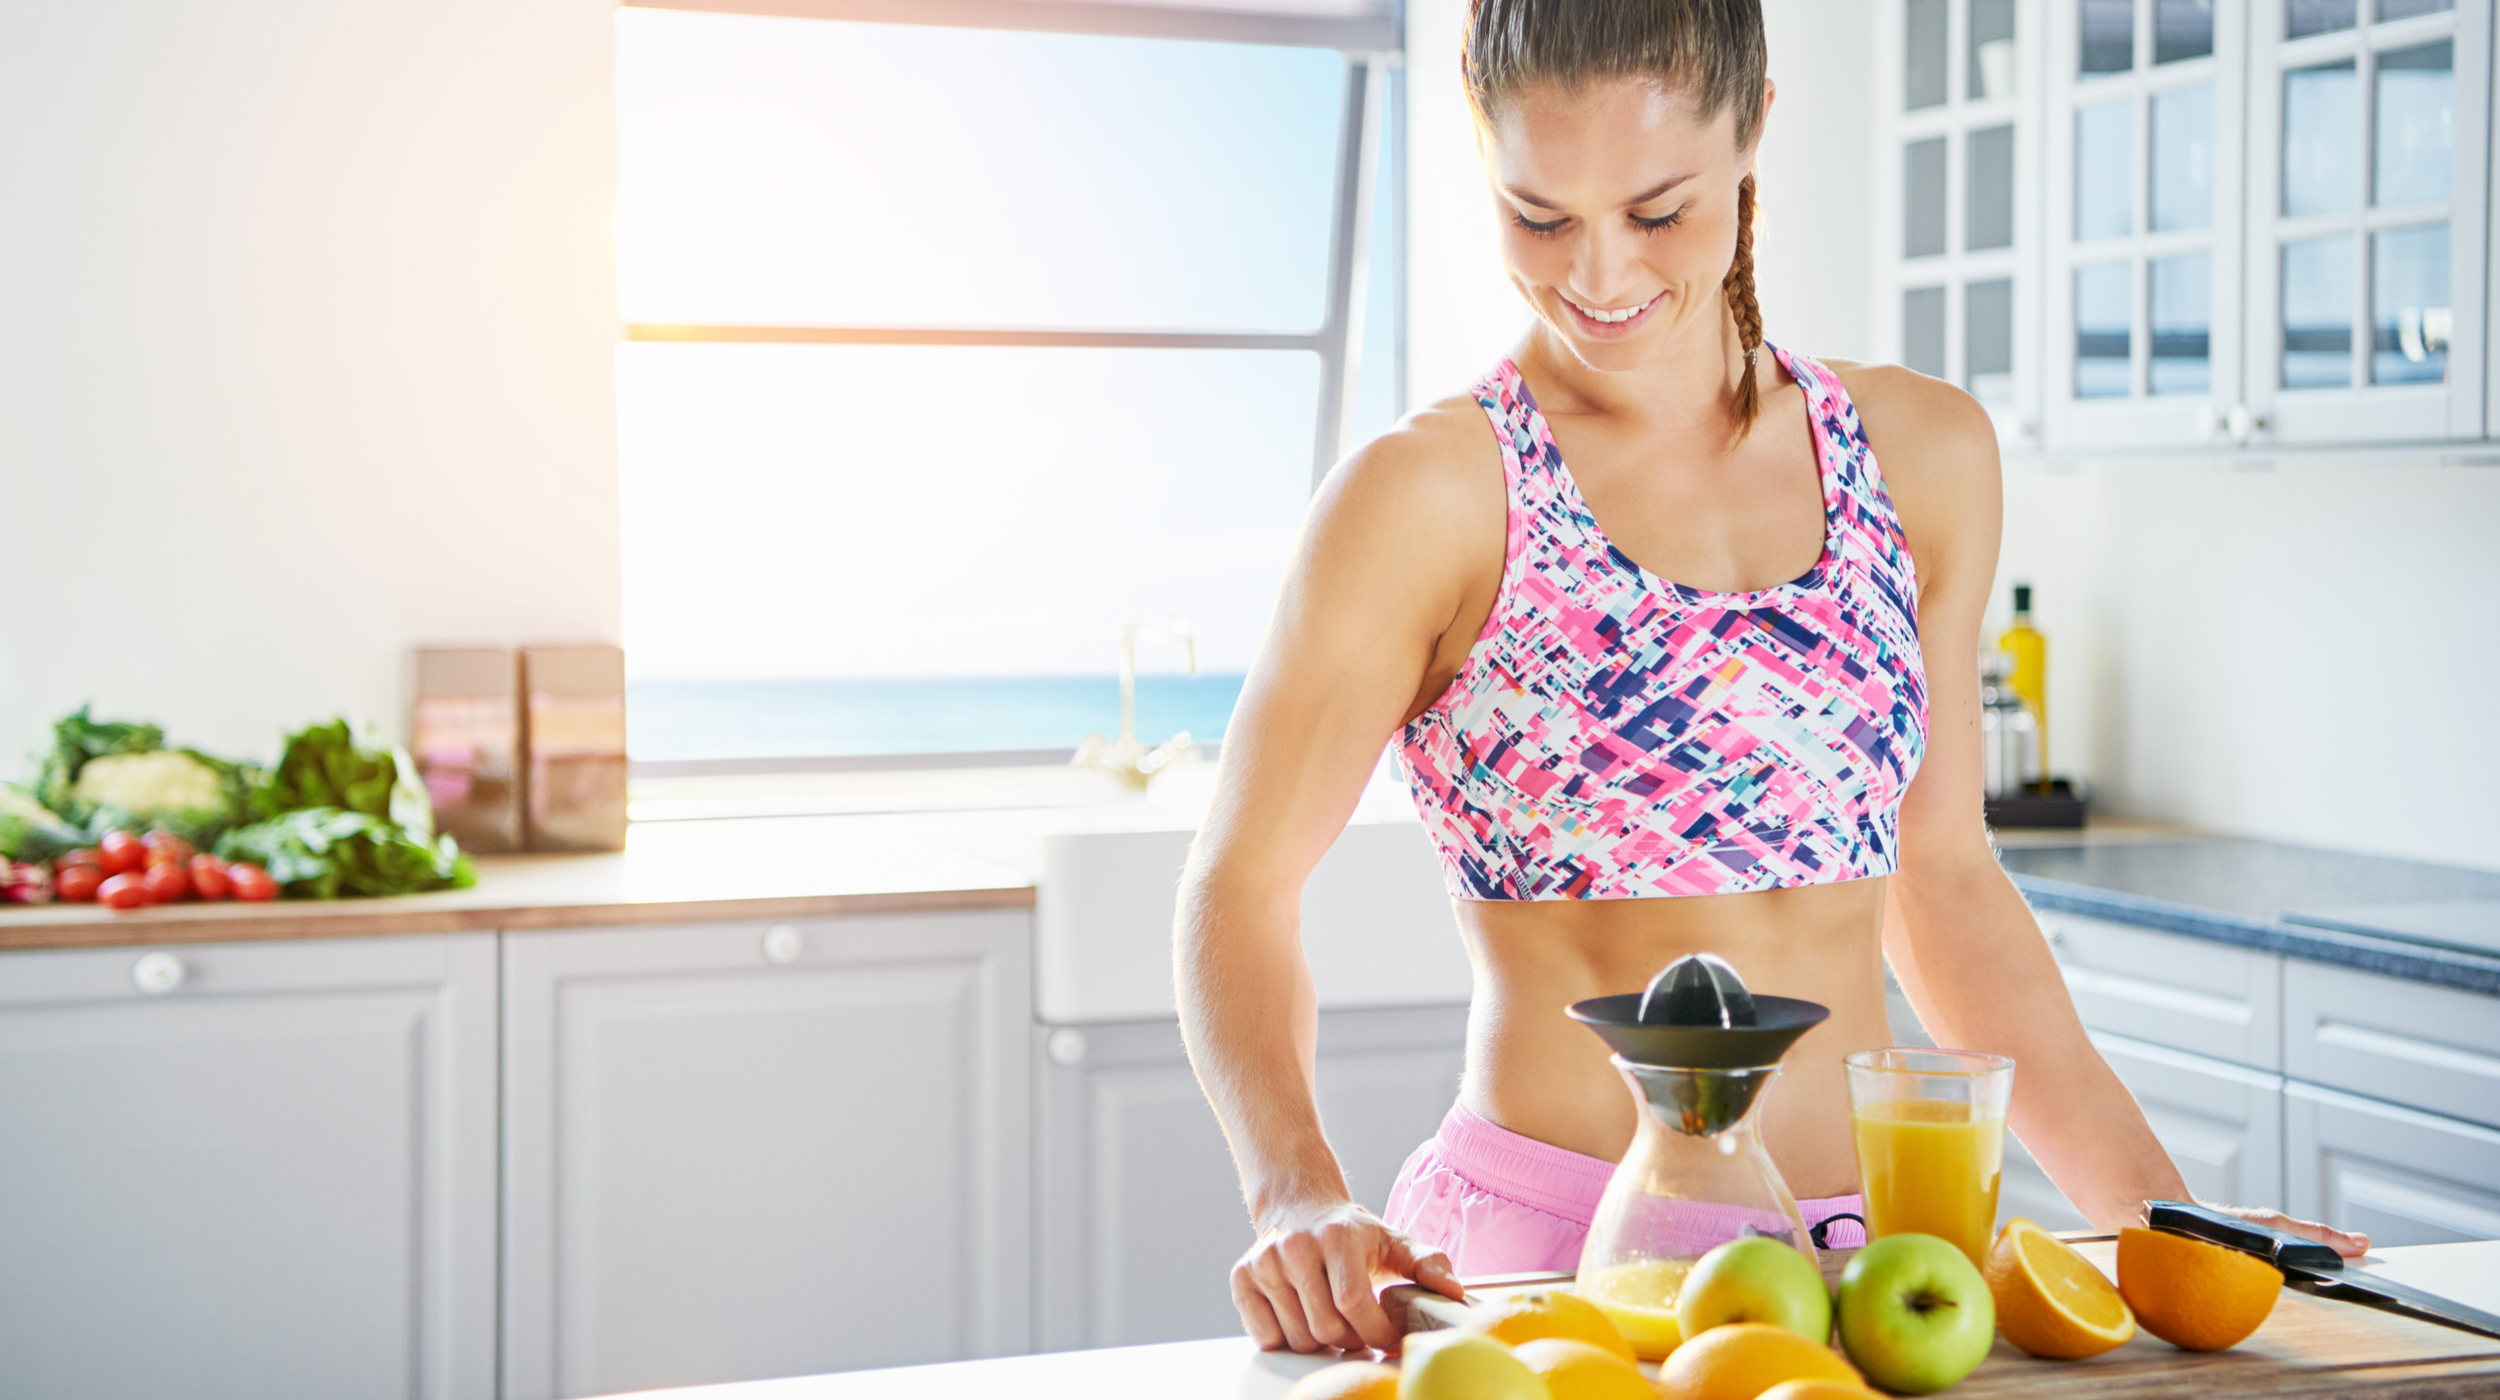 How Women Should Diet for Weight Loss